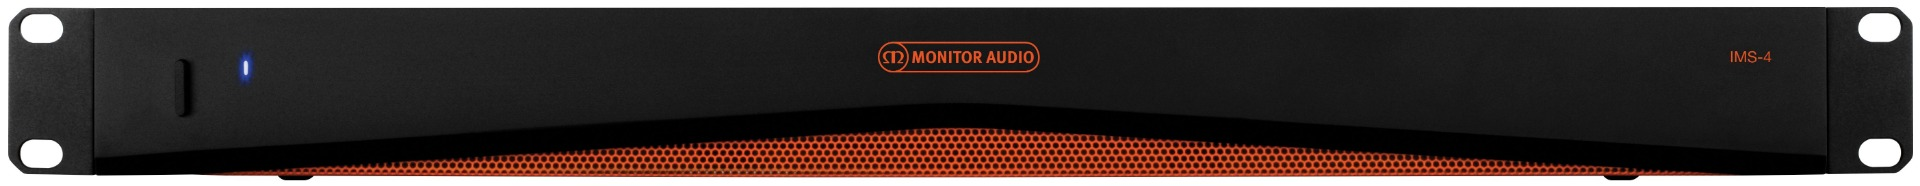 Monitor Audio IMS-4